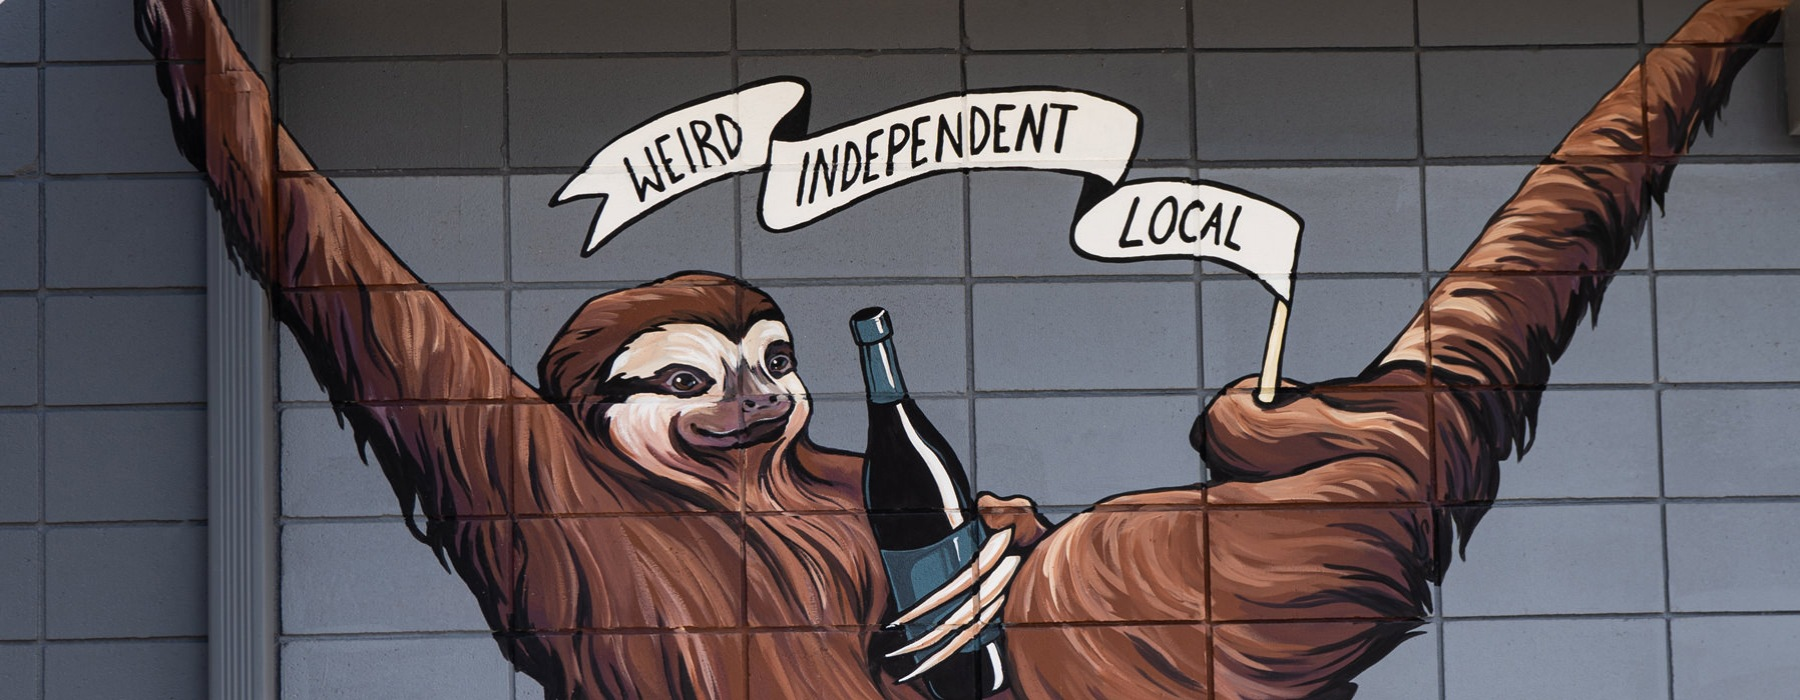 local business wall painting of a sloth